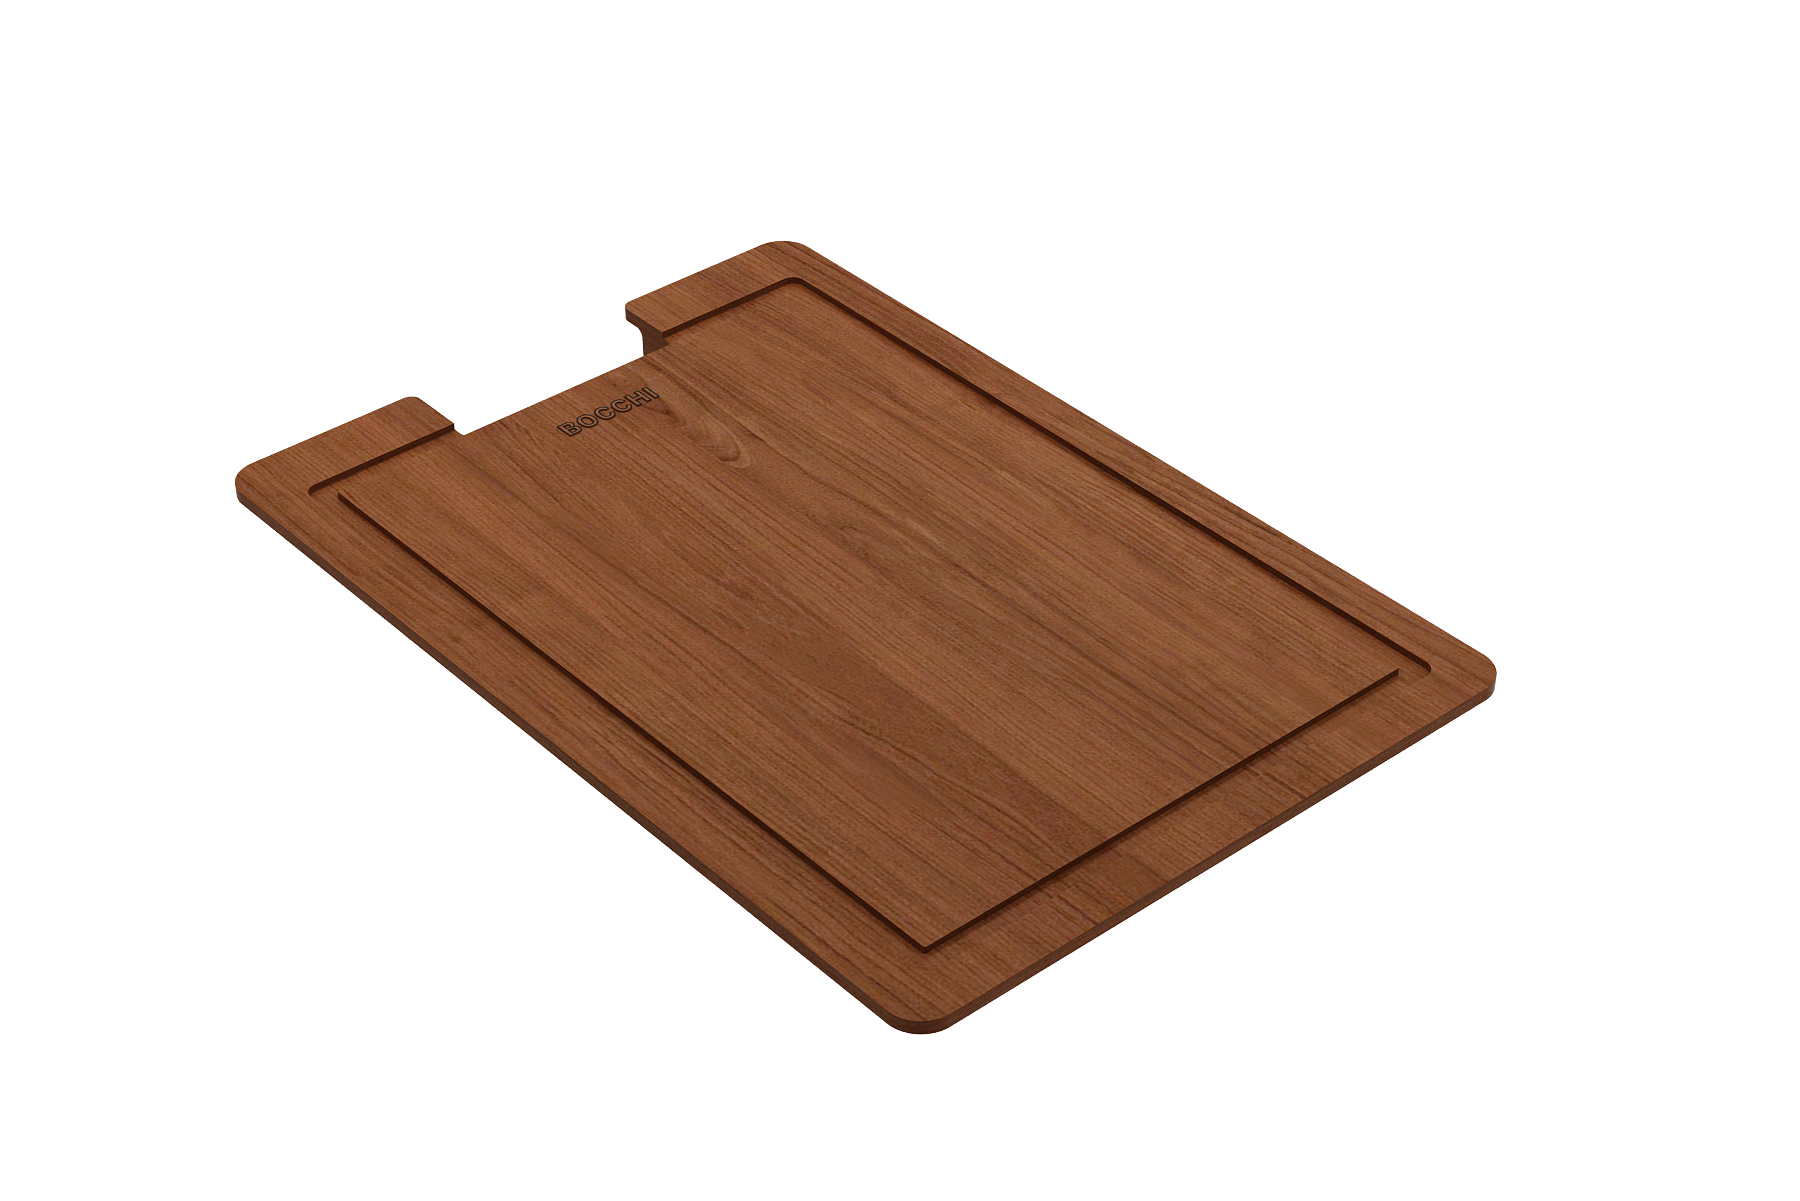 Wooden Cutting Board for BOCCHI STEP RIM fireclay kitchen sinks - Sapele Wood